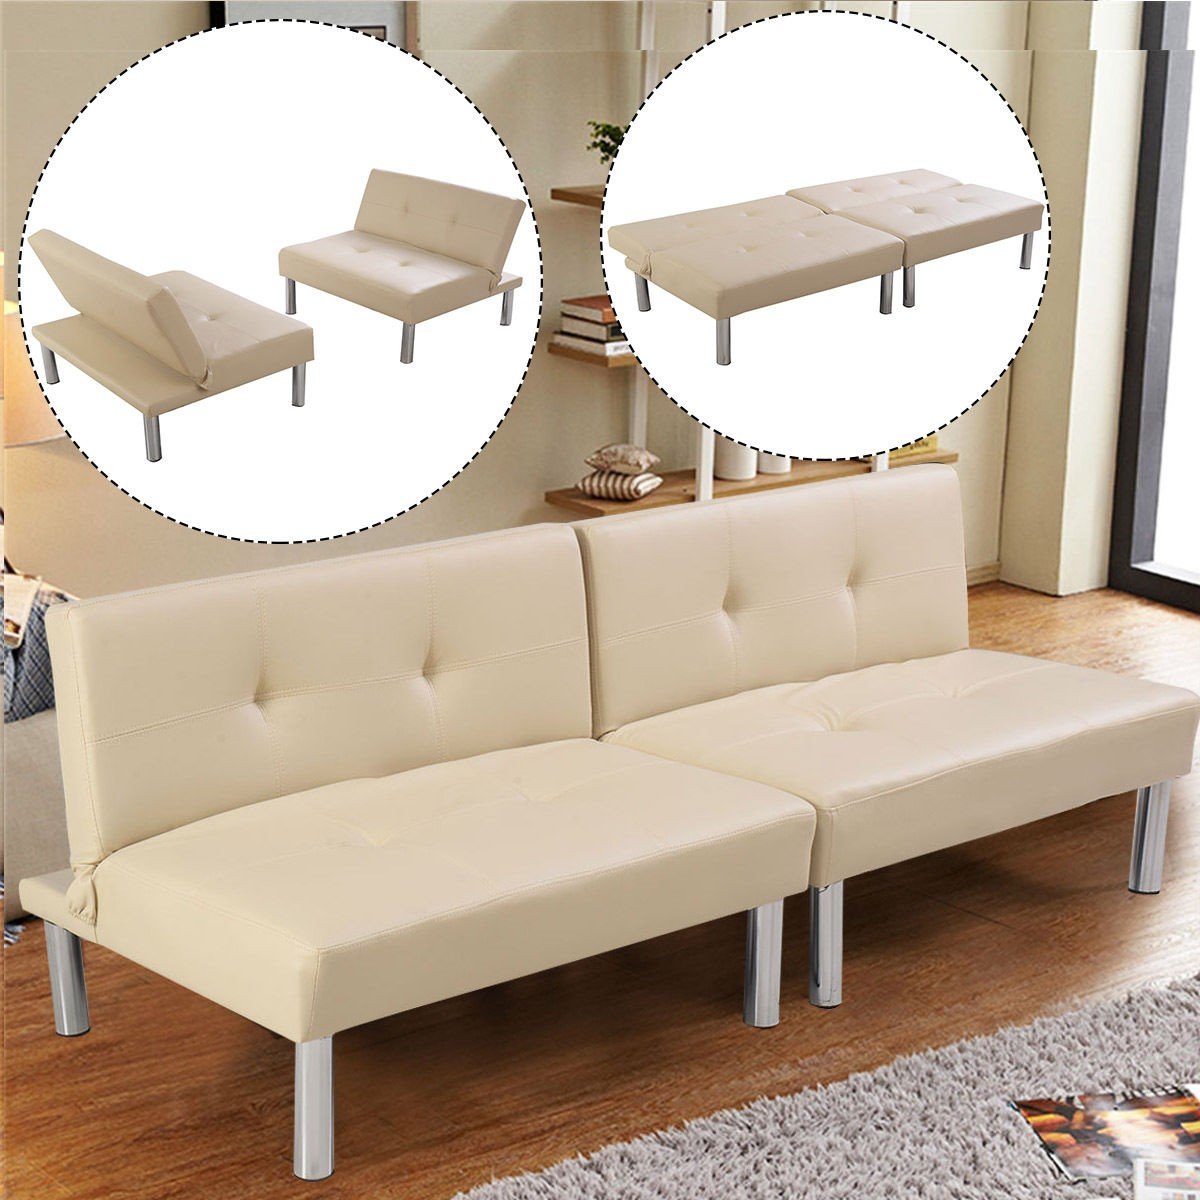 US New Folding PU Leather Futon Convertible Sofa Sleeper Bed Living ...